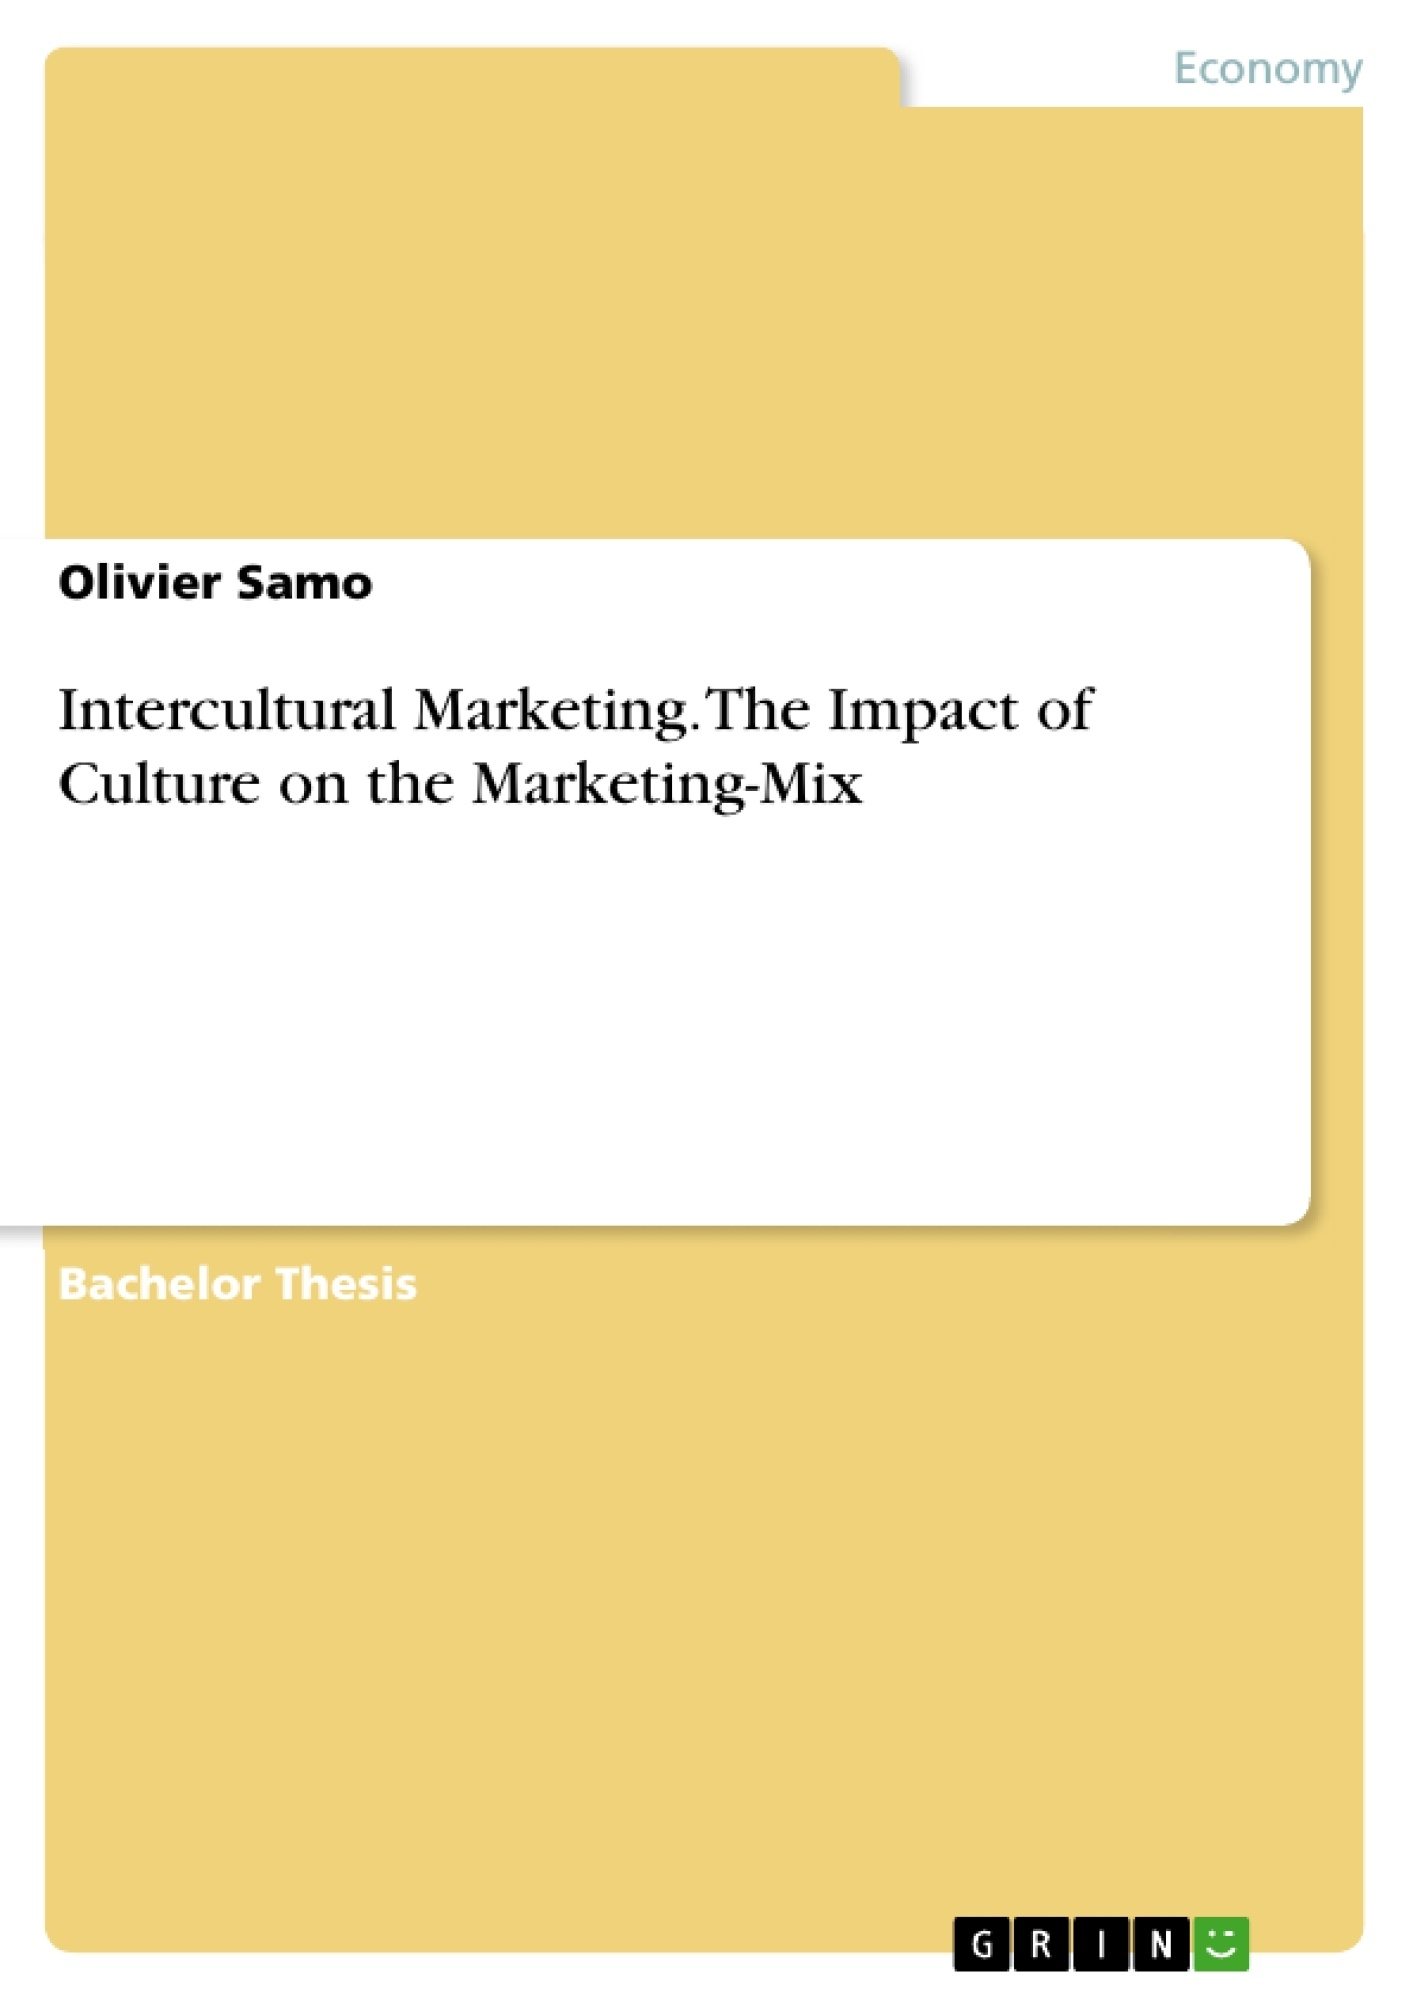 Title: Intercultural Marketing. The Impact of Culture on the Marketing-Mix